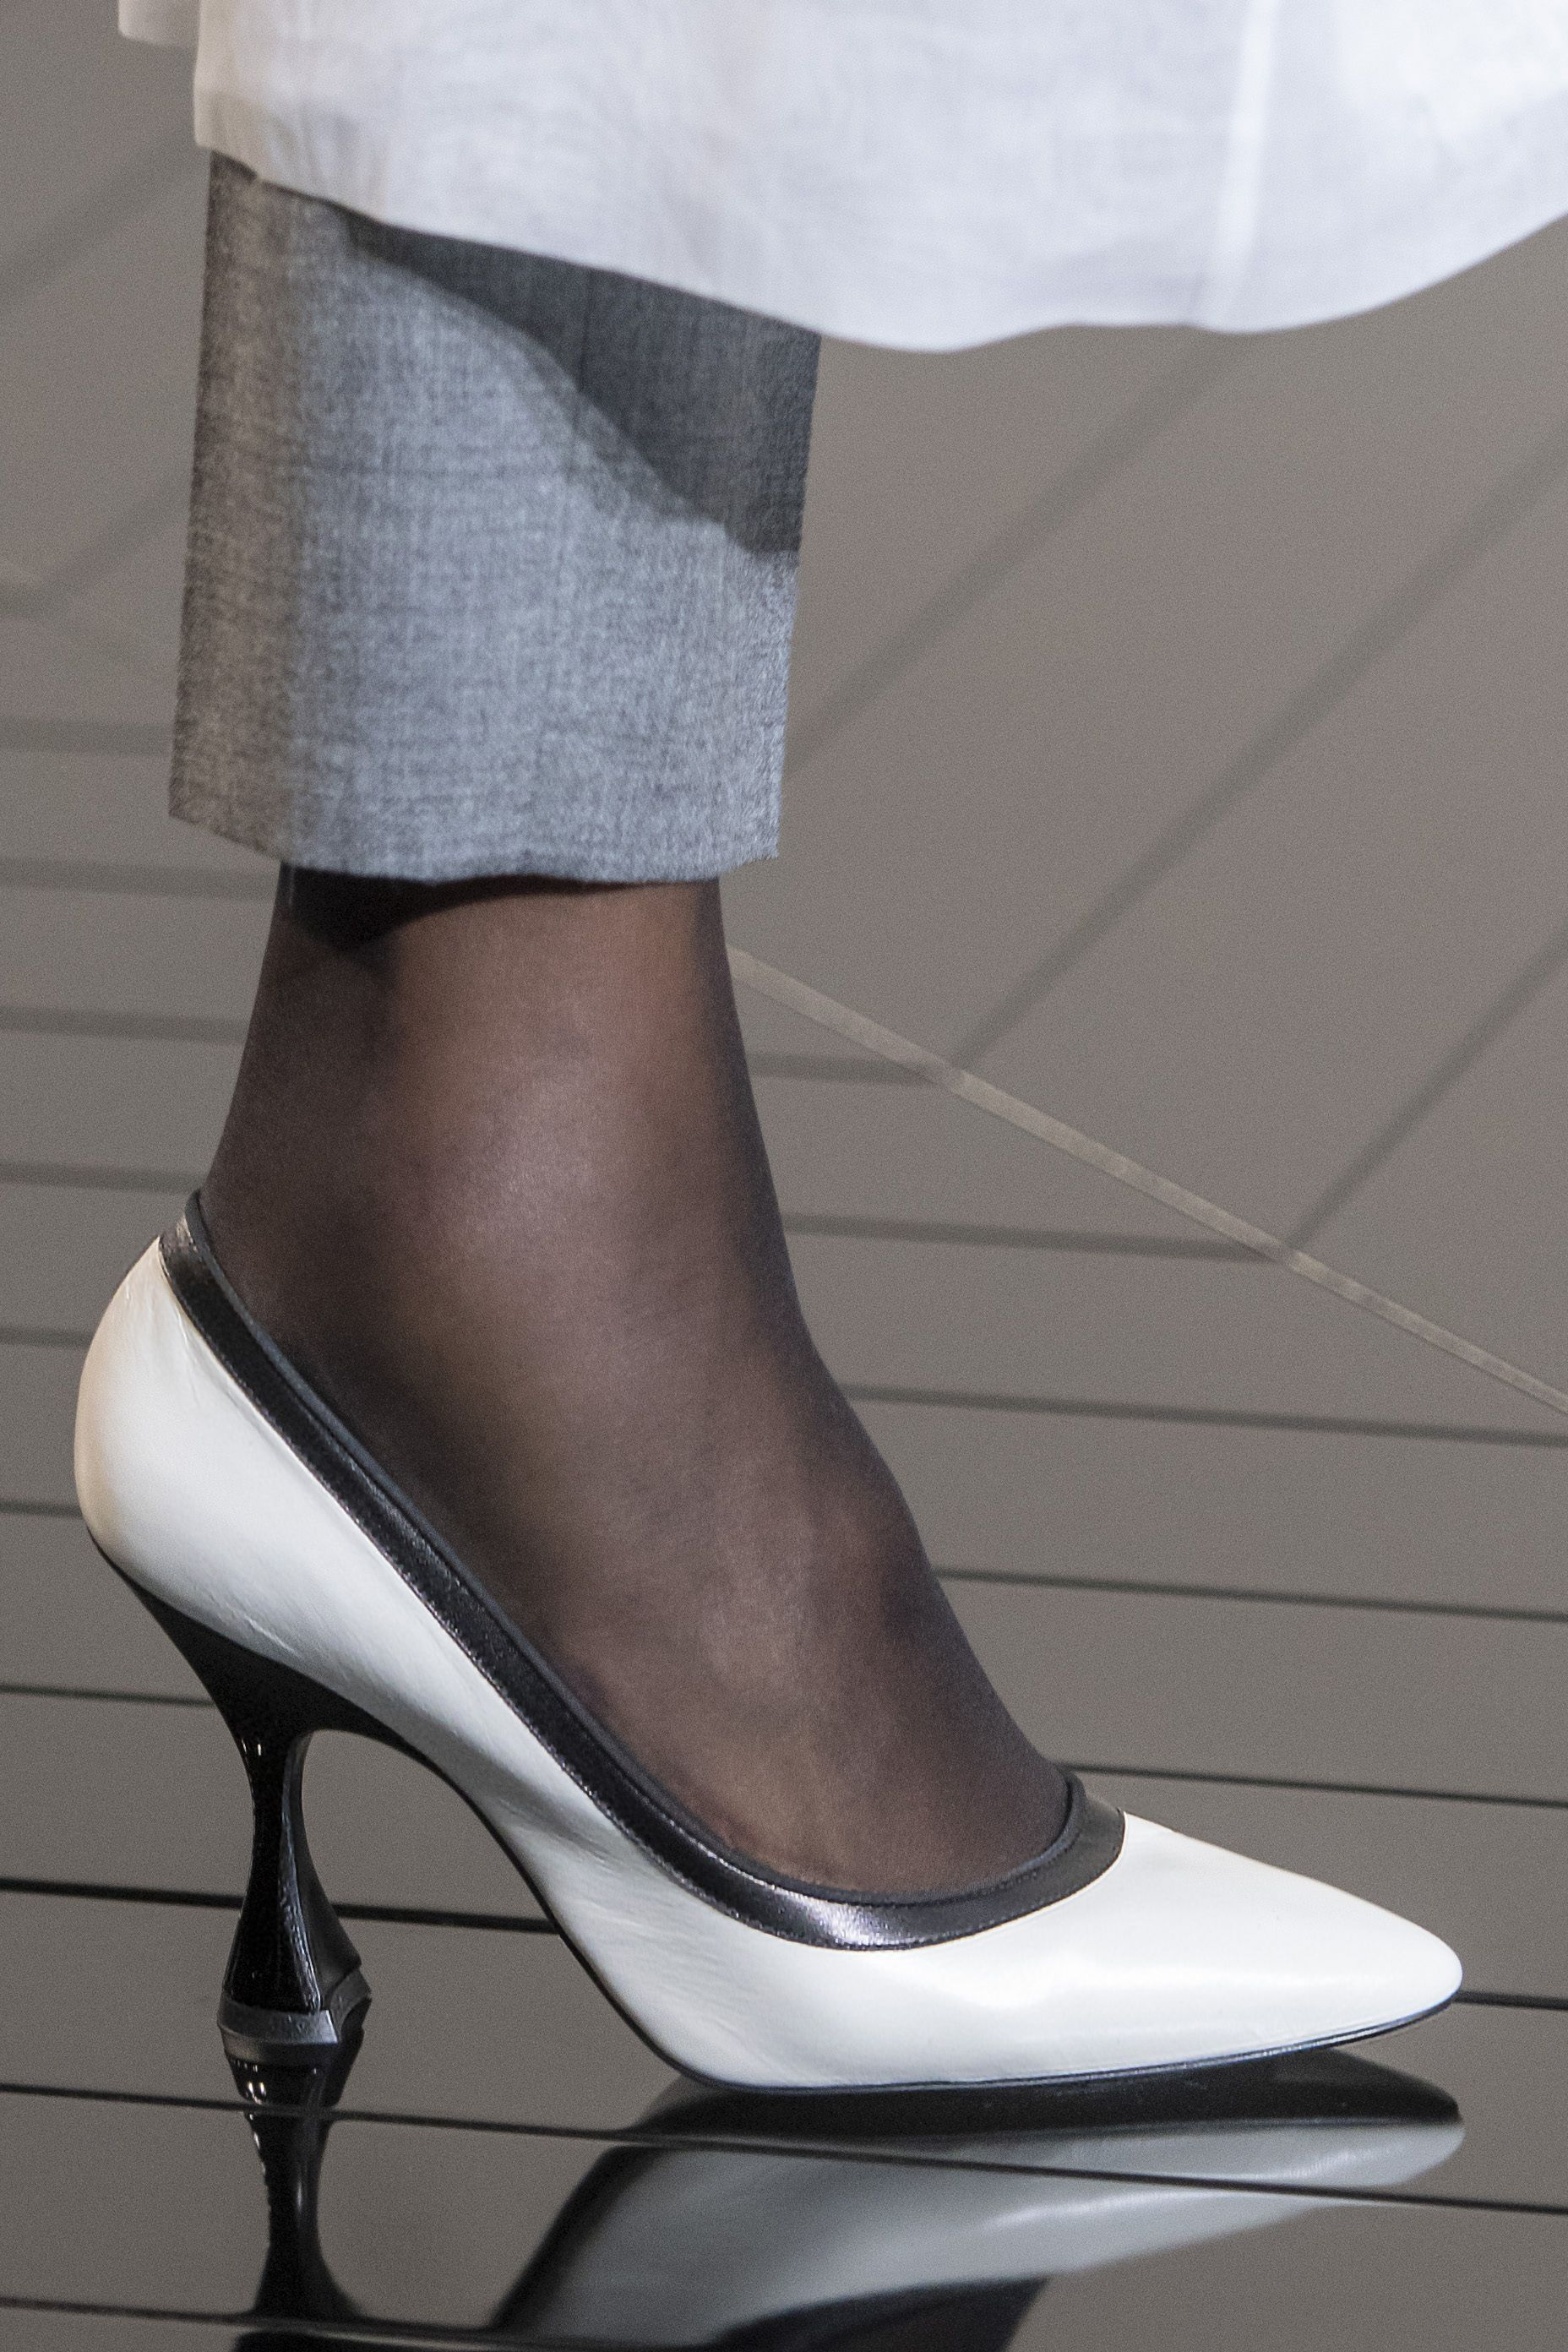 AW19 shoe trends